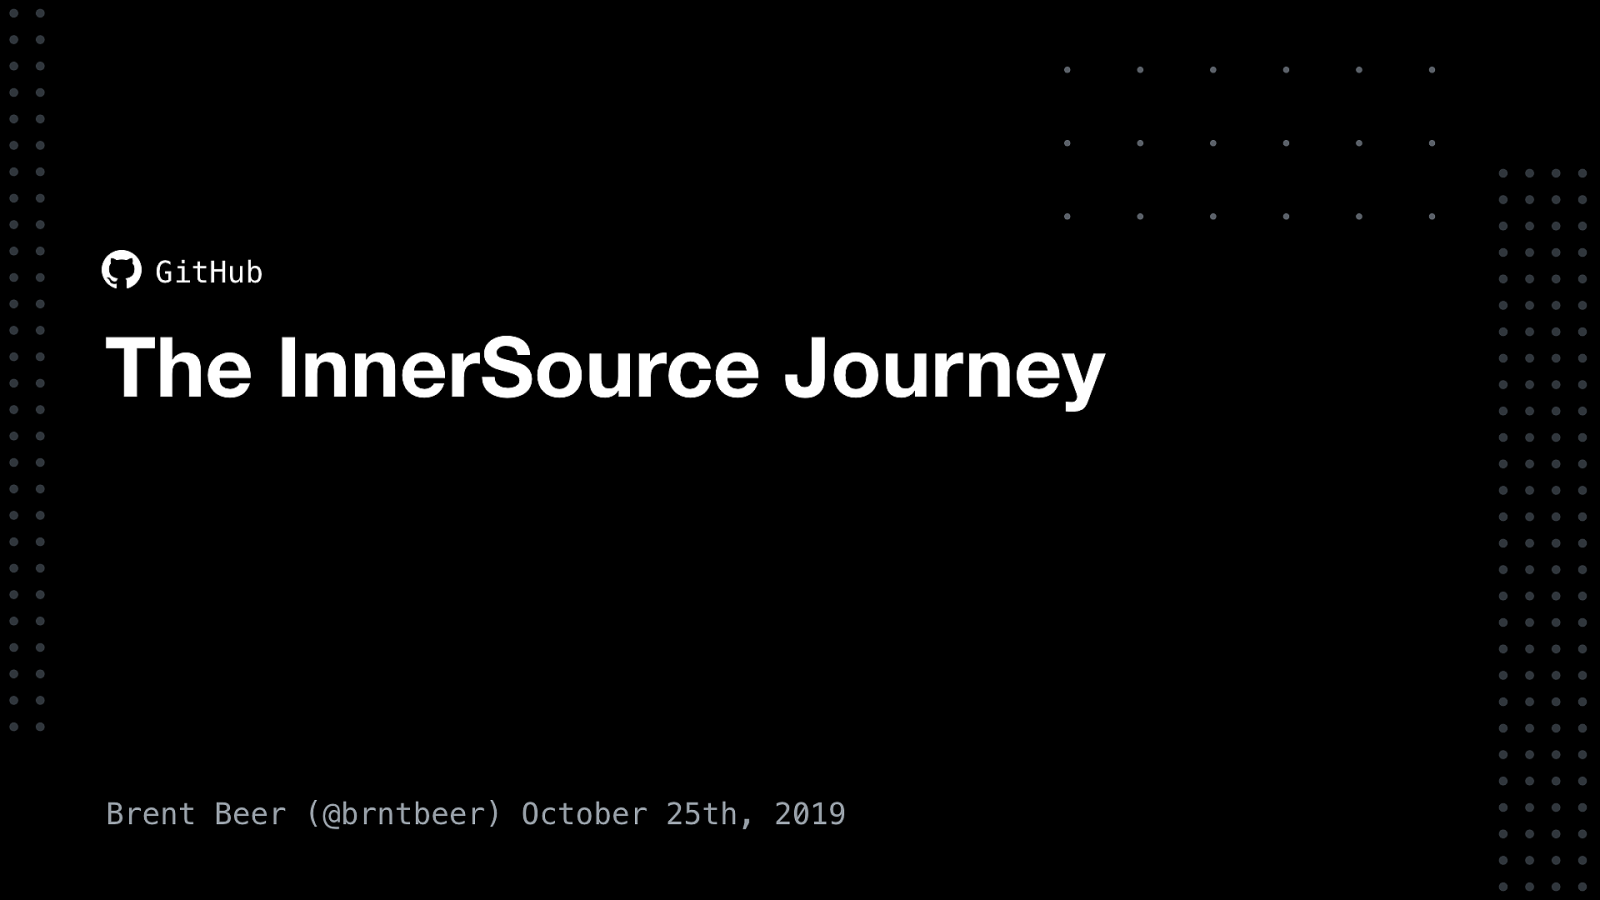 The InnerSource Journey